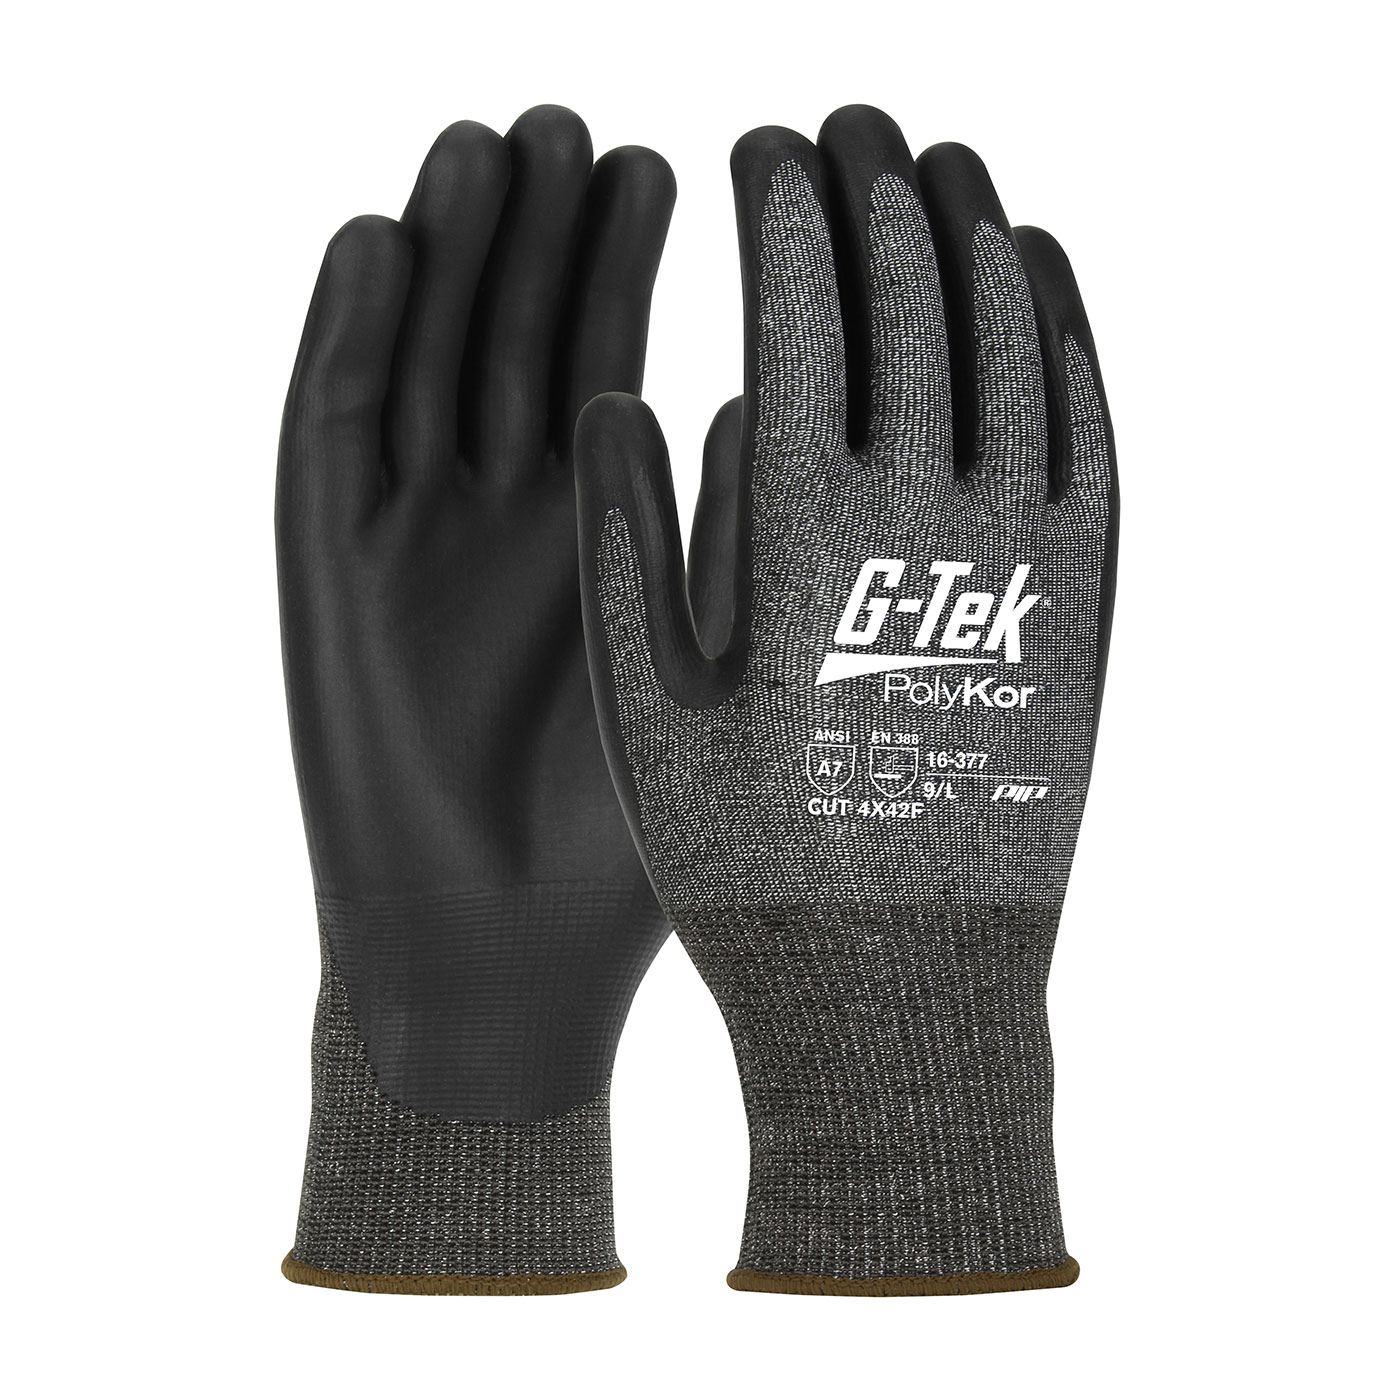 PIP G-Tek® PolyKor® X7™ Seamless Knit PolyKor® X7™ Blended Glove with NeoFoam® Coated Palm & Fingers - Touchscreen Compatible #16-377